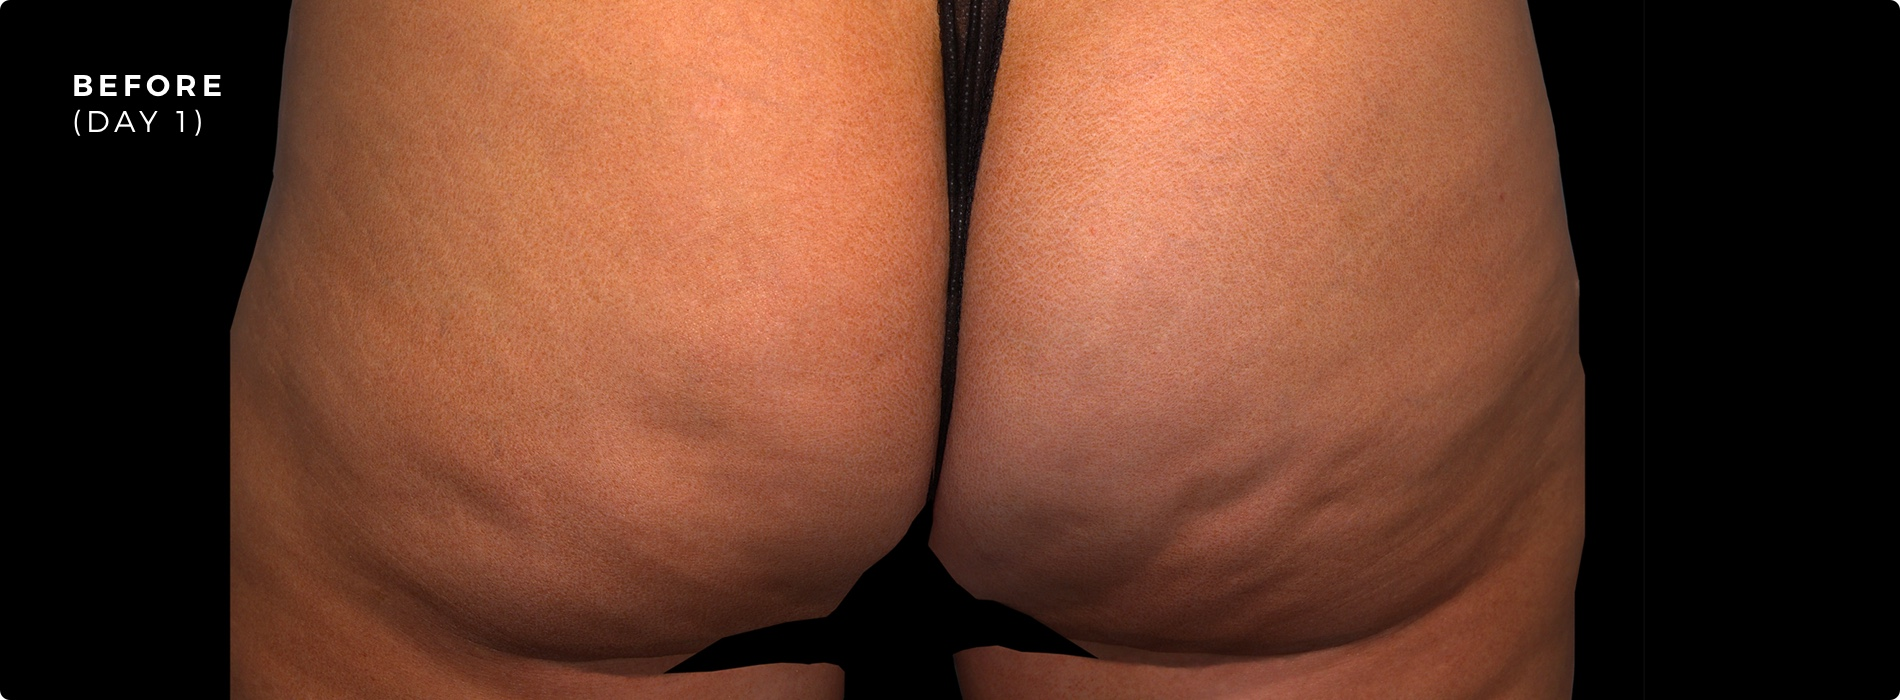 QWO Cellulite Reduction Before 1